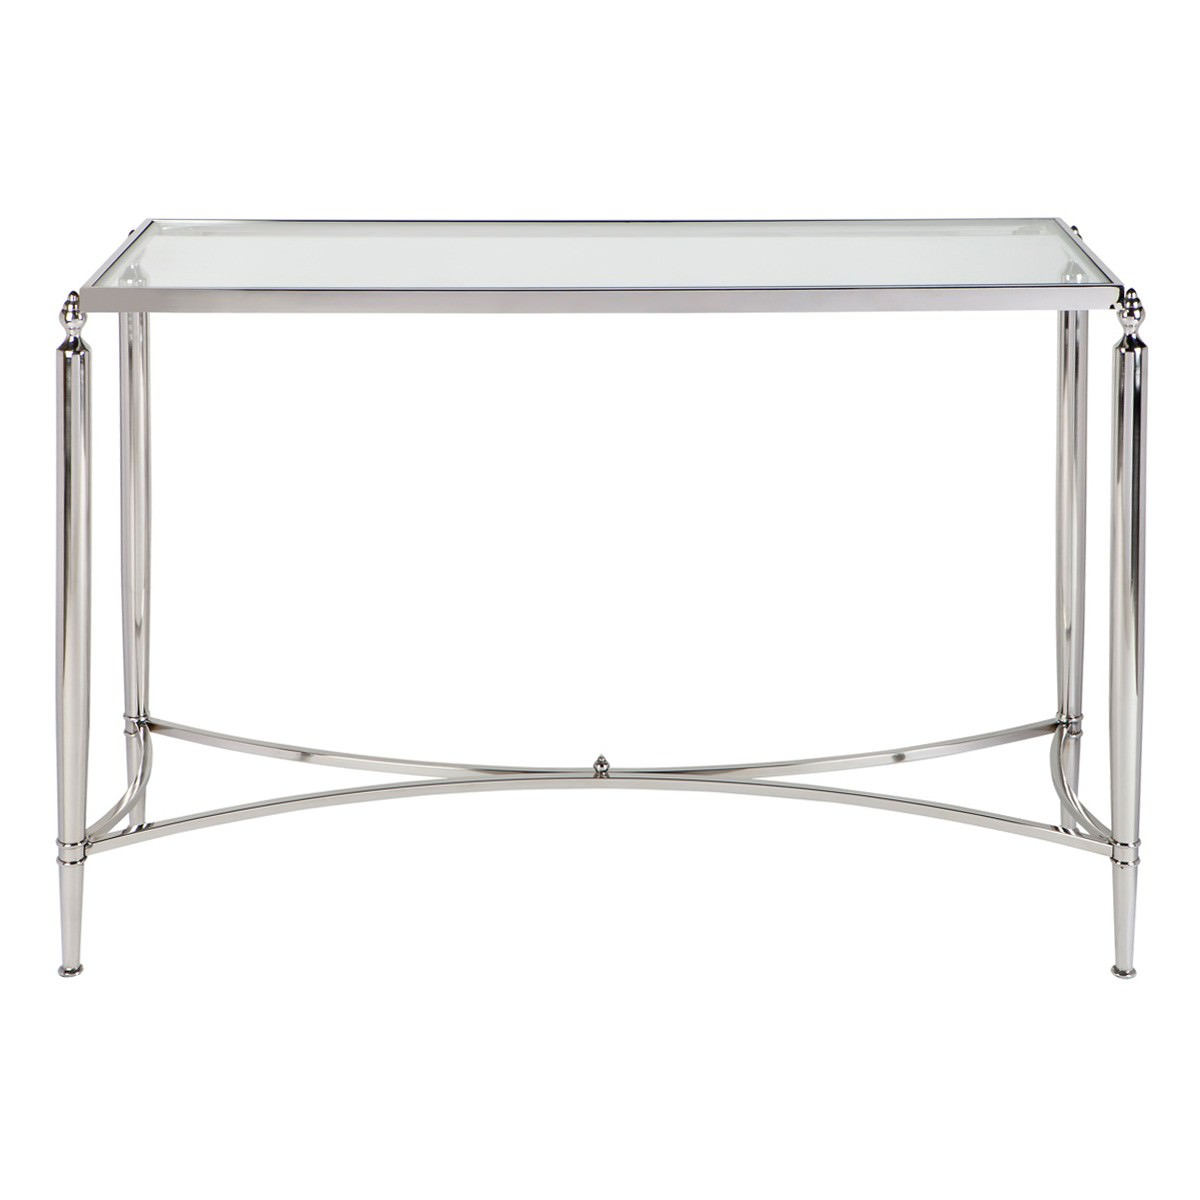 Jacques Glass Top Stainless Steel Console Table, 124cm, Nickel